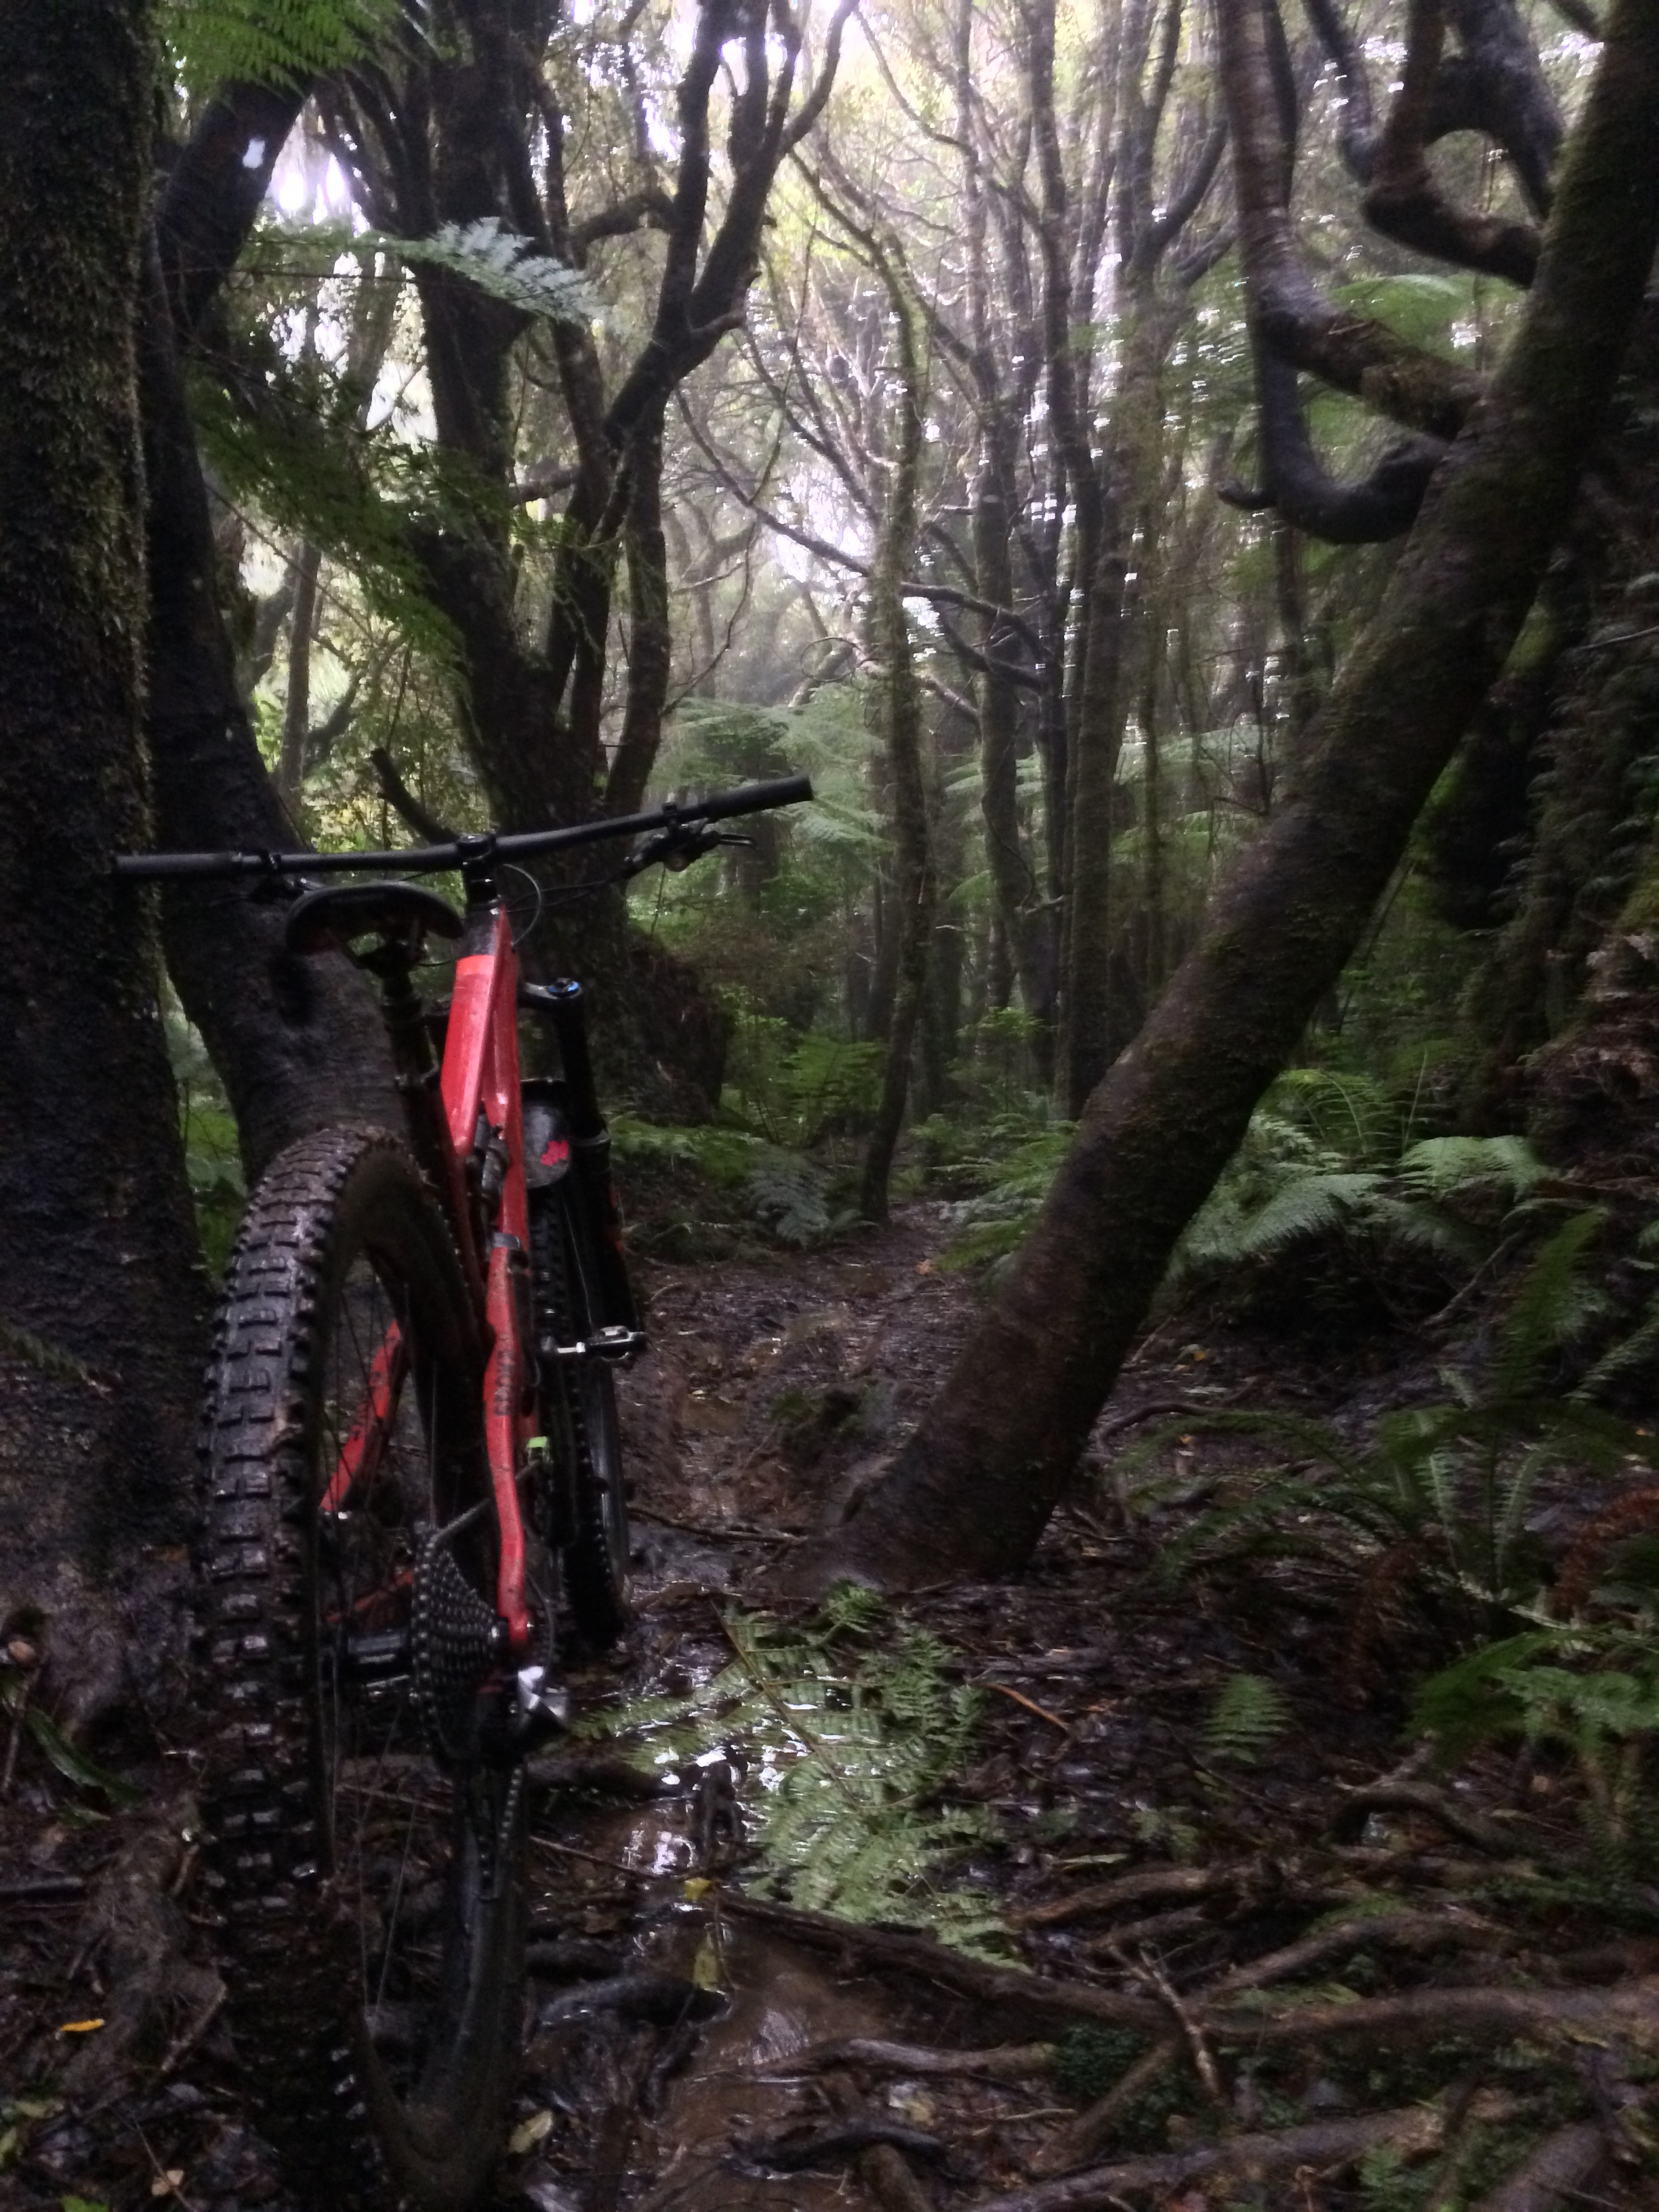 This is where I may have soiled myself (the first time). It almost makes wet riding something to yearn for.